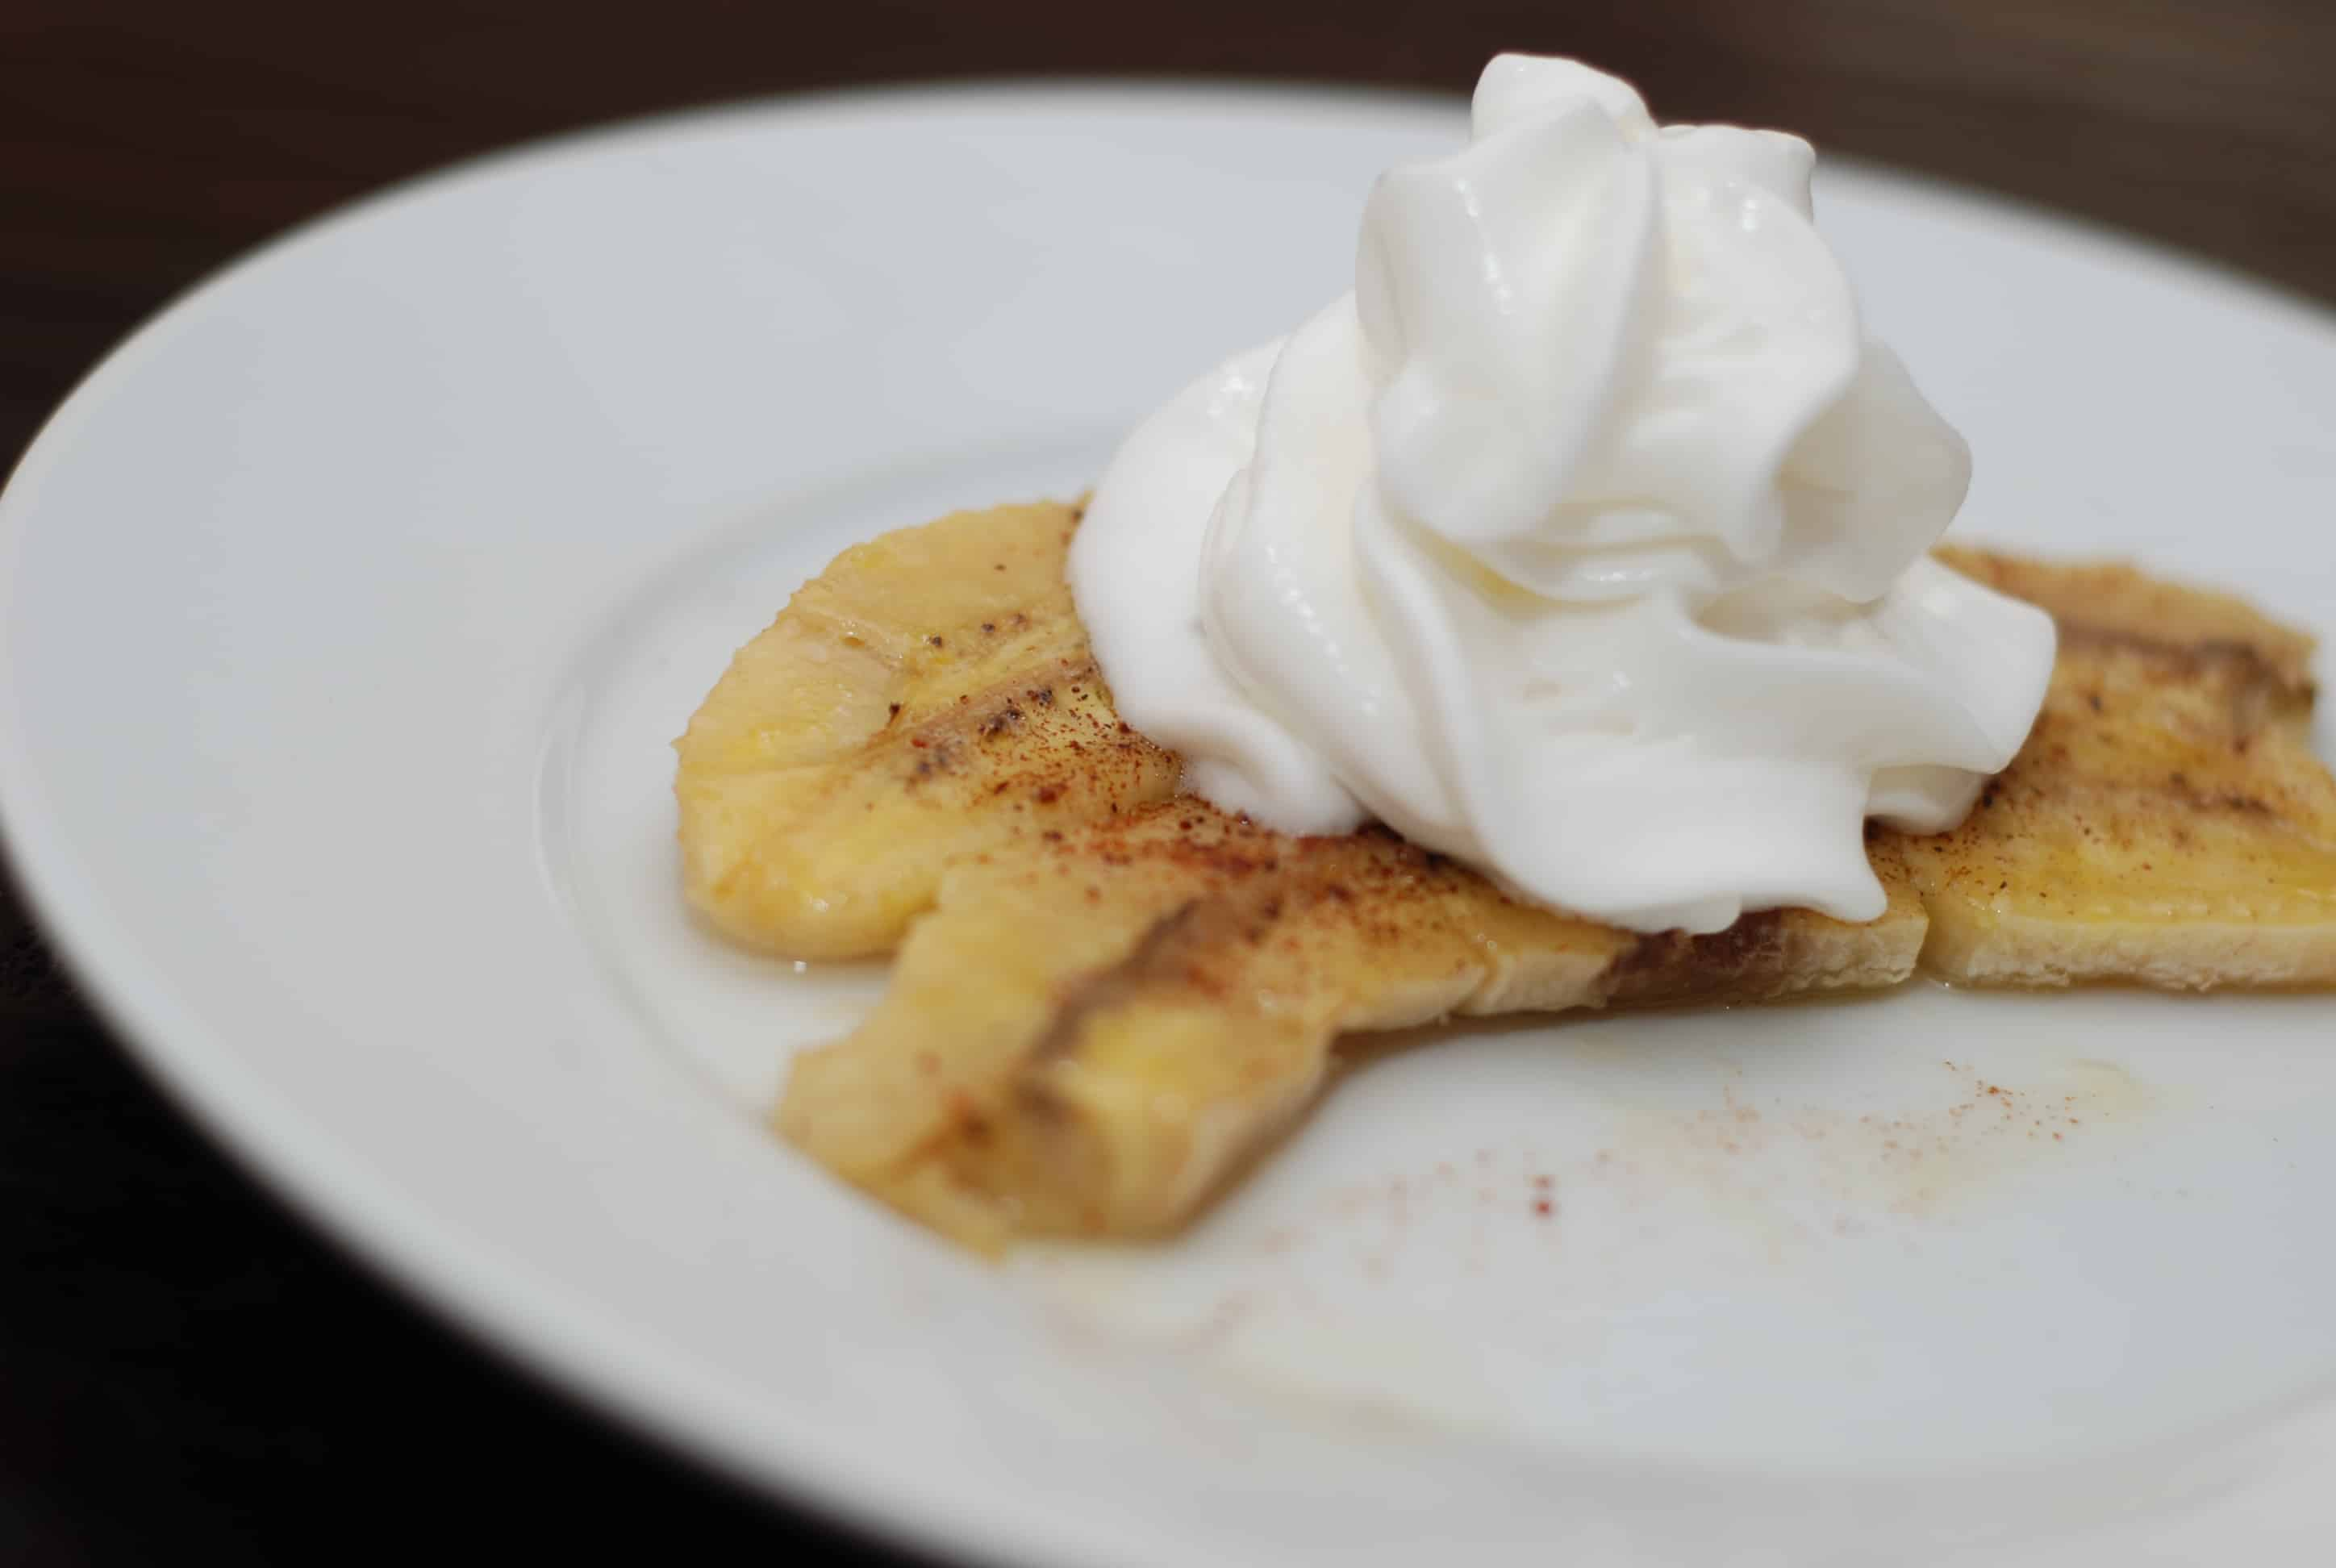 ... oatmeal fried bananas bananas foster crepes guiltless baked bananas